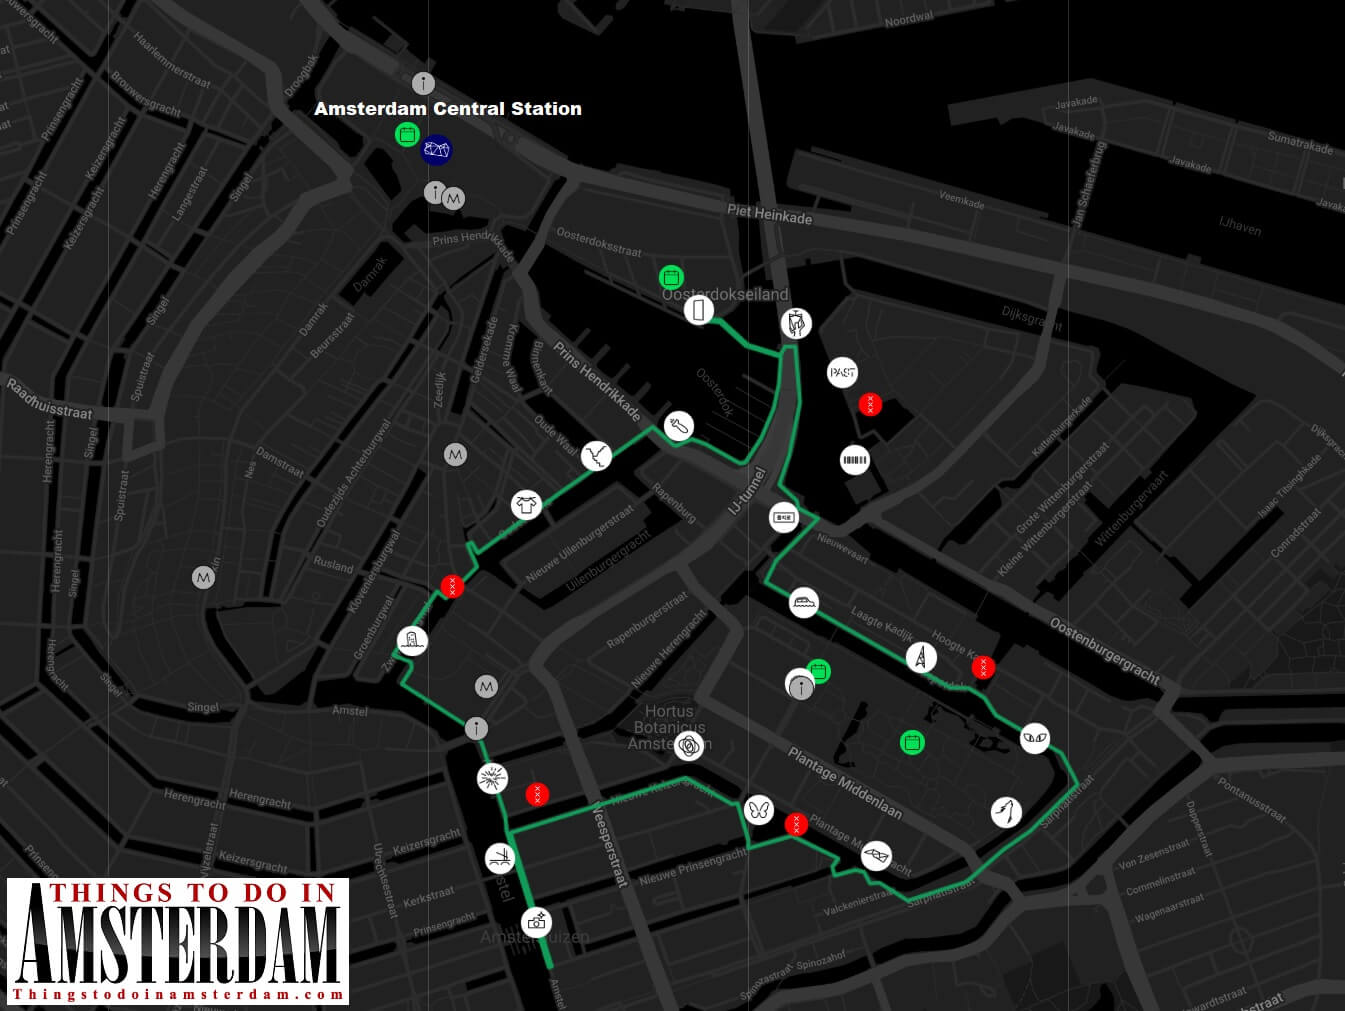 Amsterdam Light Festival 2019-2020 walking route